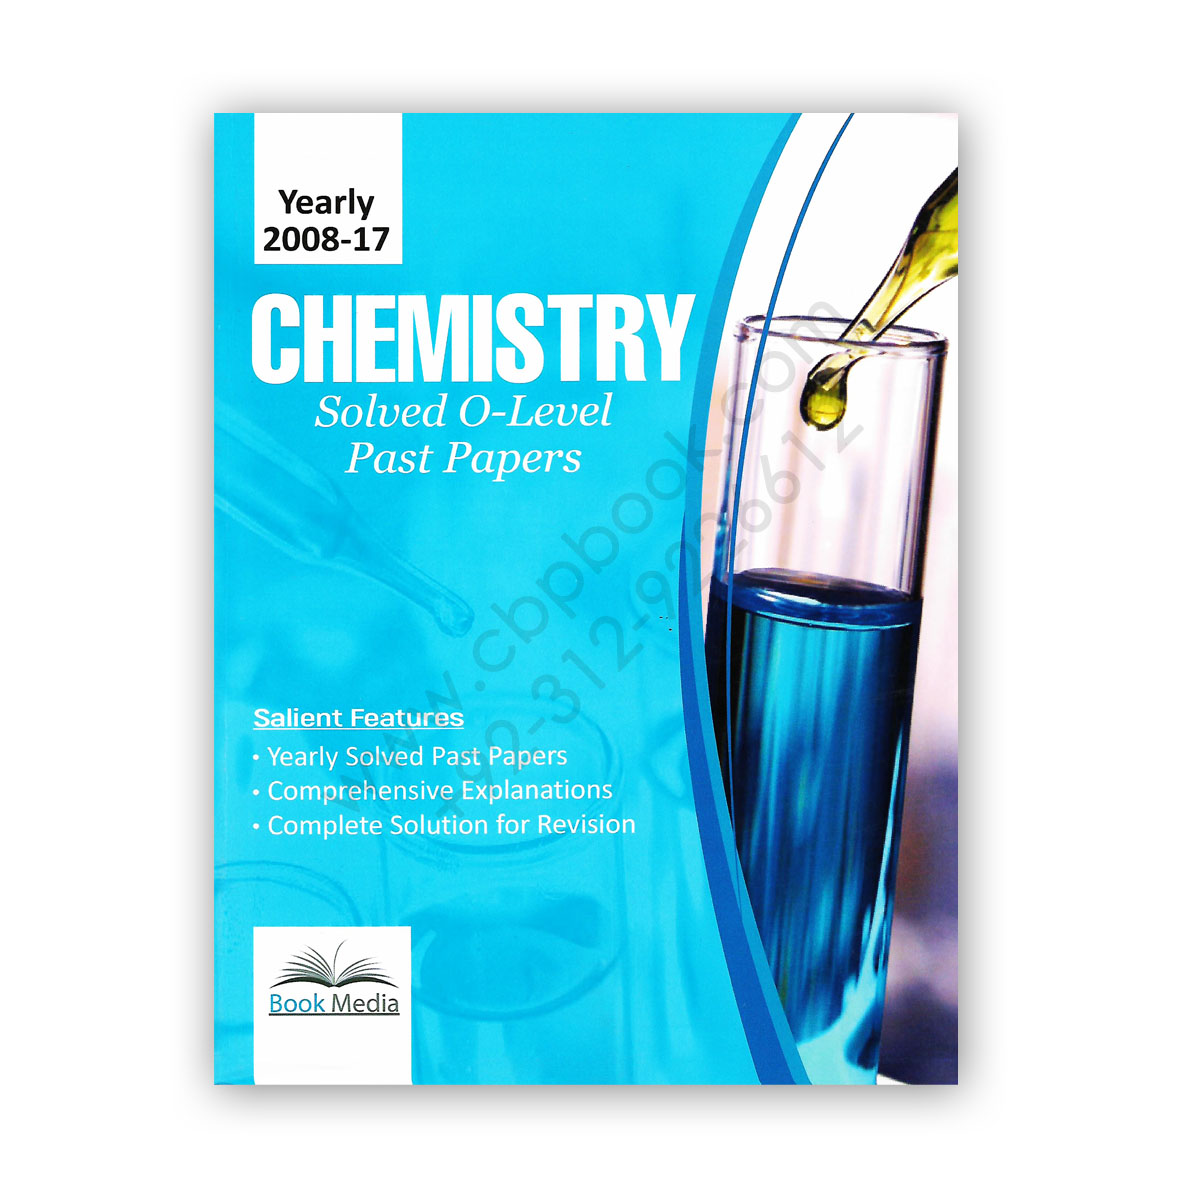 o level chemistry solved past papers yearly 2008-2017 - book media